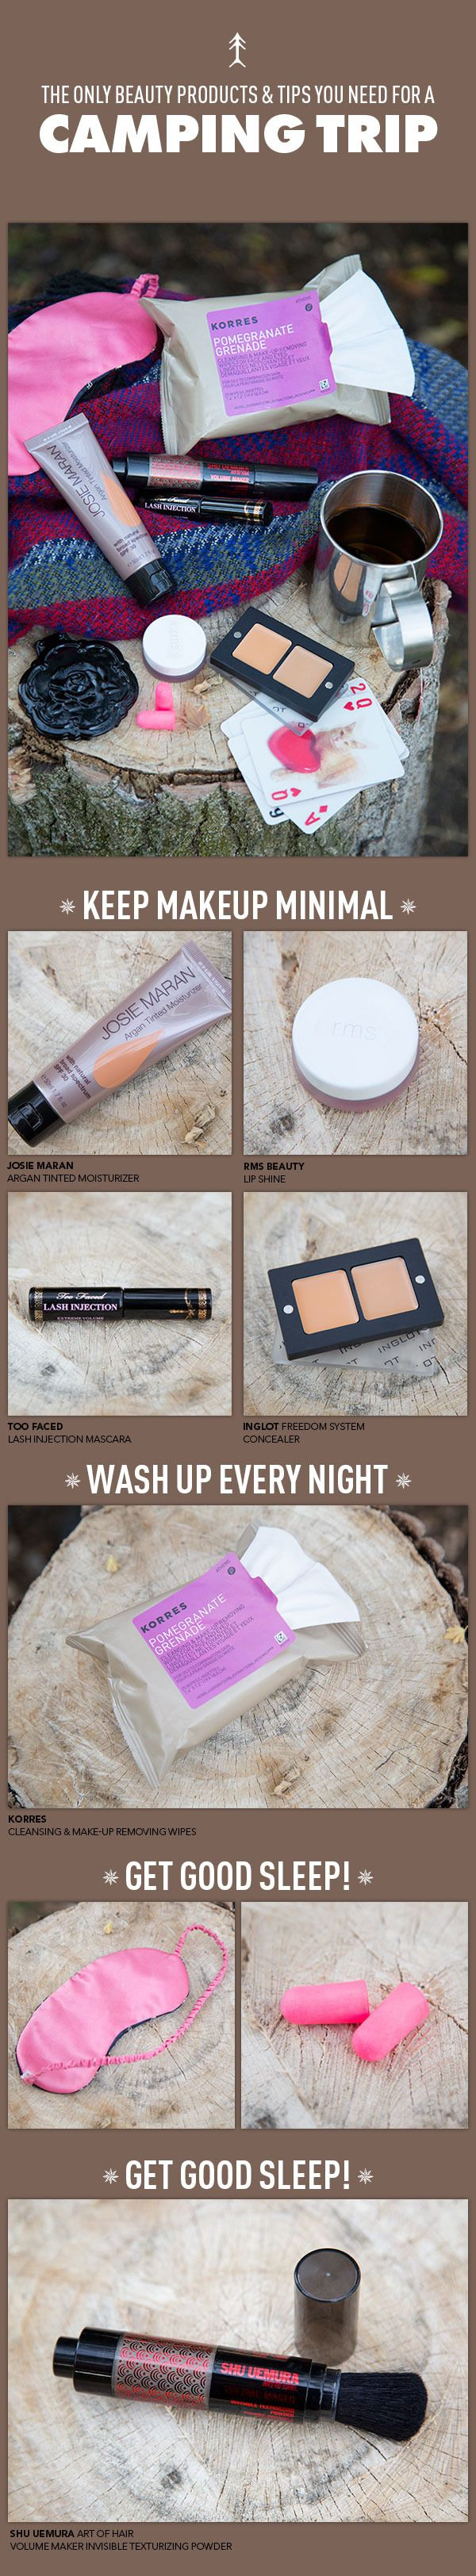 Beauty Products (and Tips!) for a Camping Trip... There's a difference between High maintenance, low maintenance, and NO maintenance.... Keep your photos Facebook friendly.